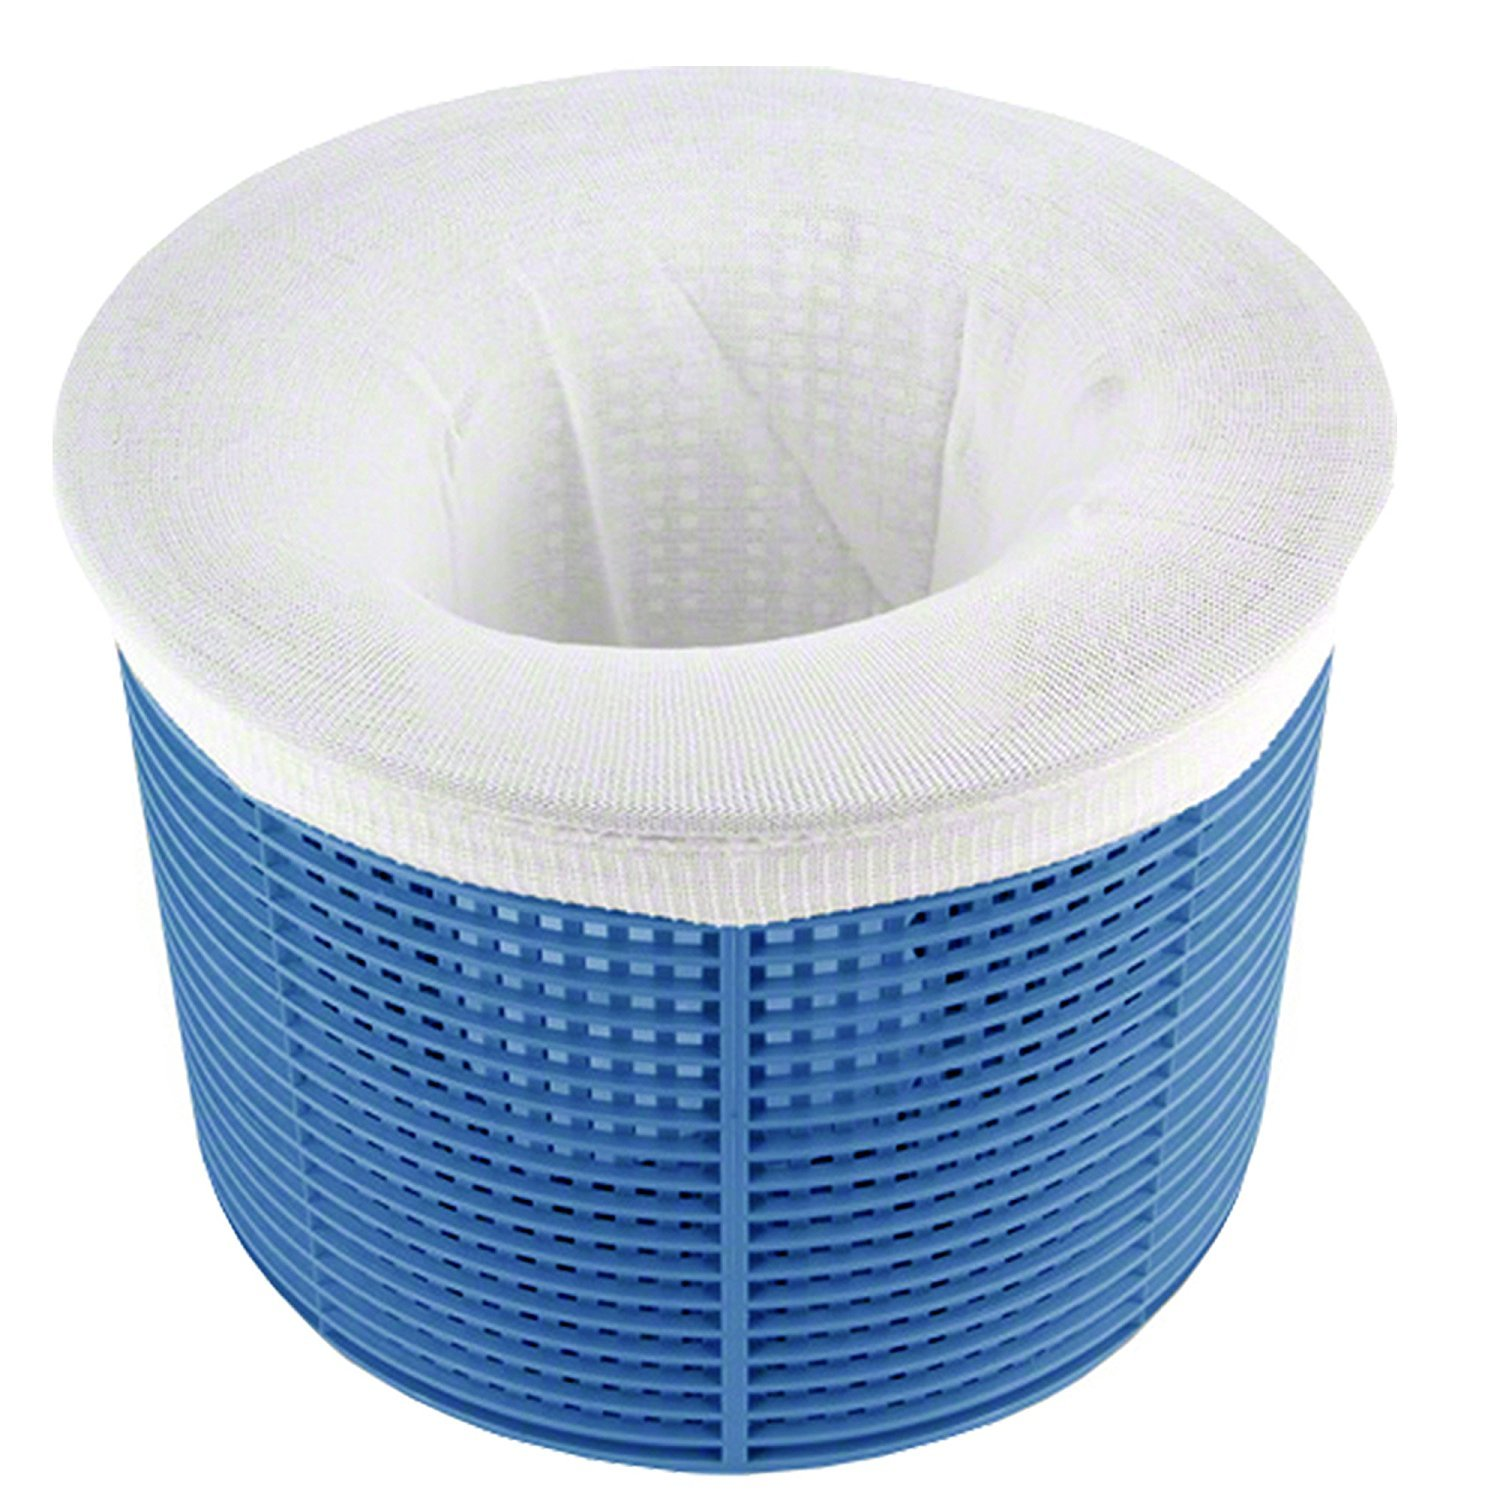 Pool Skimmer Socks Perfect Filter Savers to Protect Your Filters, Baskets,&Skimmers Removes Debris, Leaves Oil, Pollen, Bugs, Scum & More! (10 Pack)